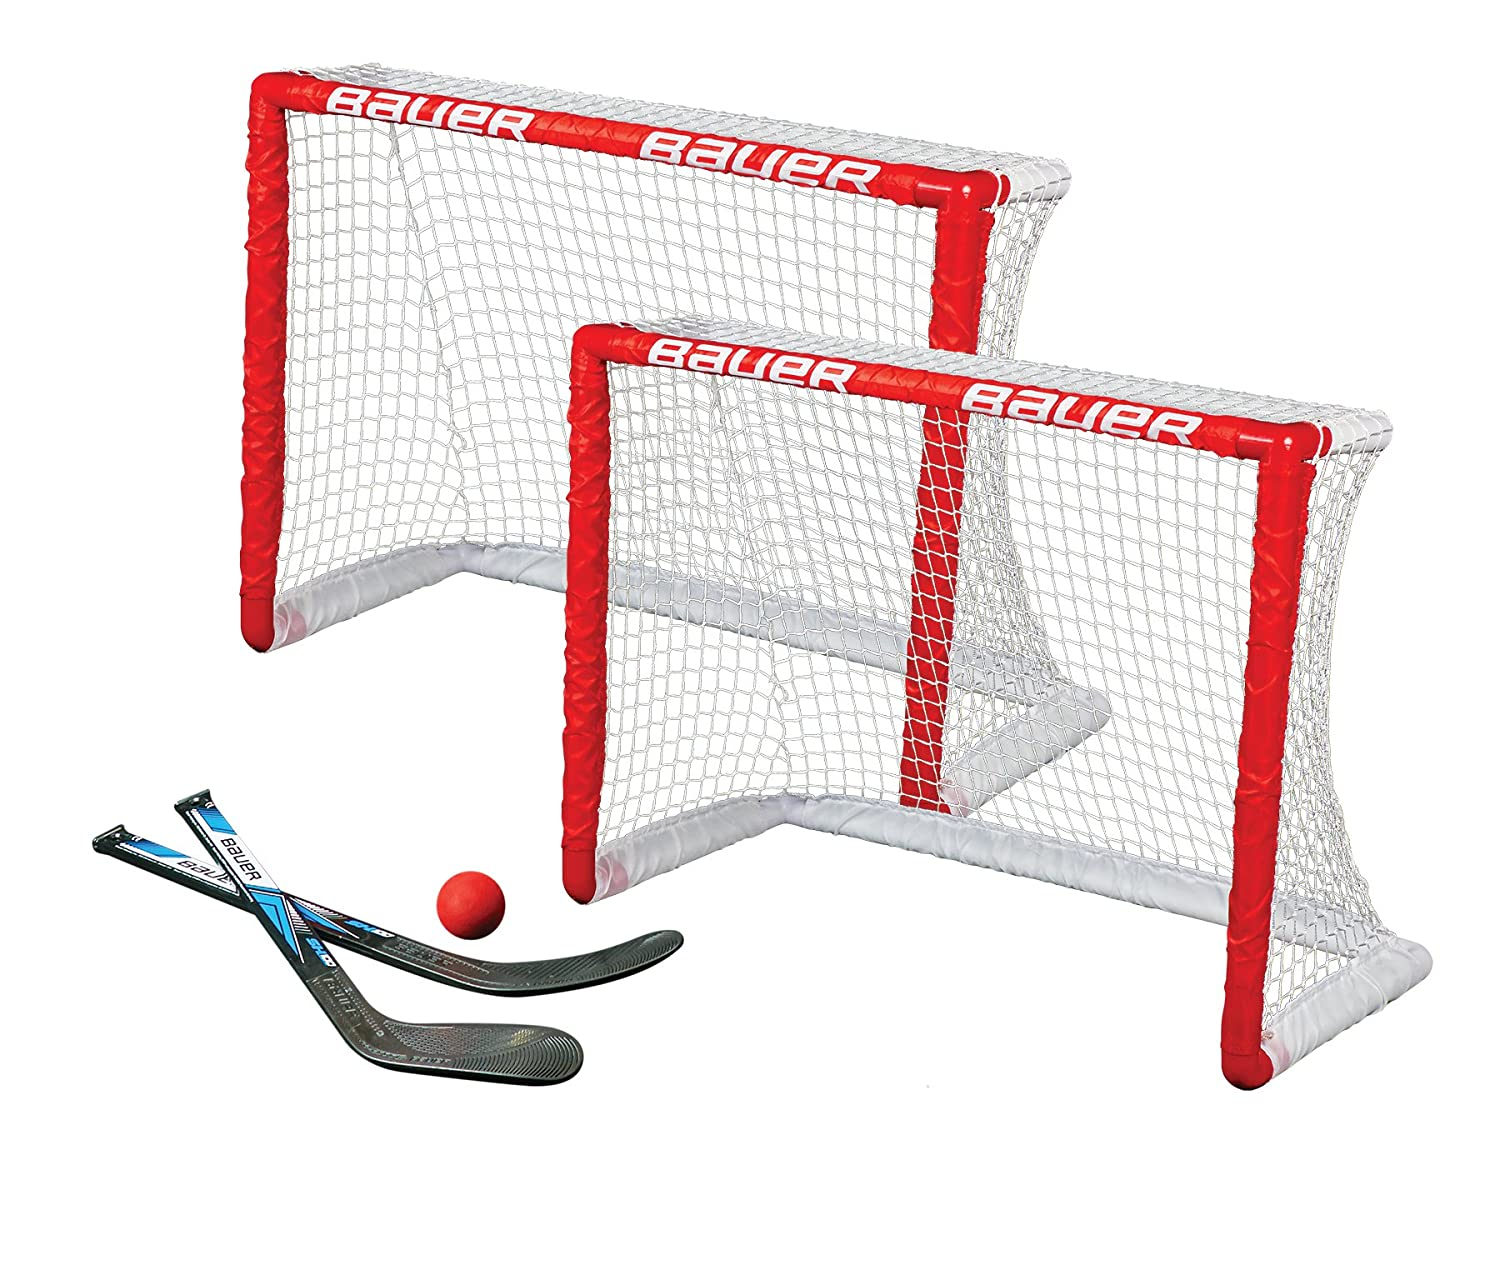 Rosso Bauer Knee Hockey Goal Set Twin Pack